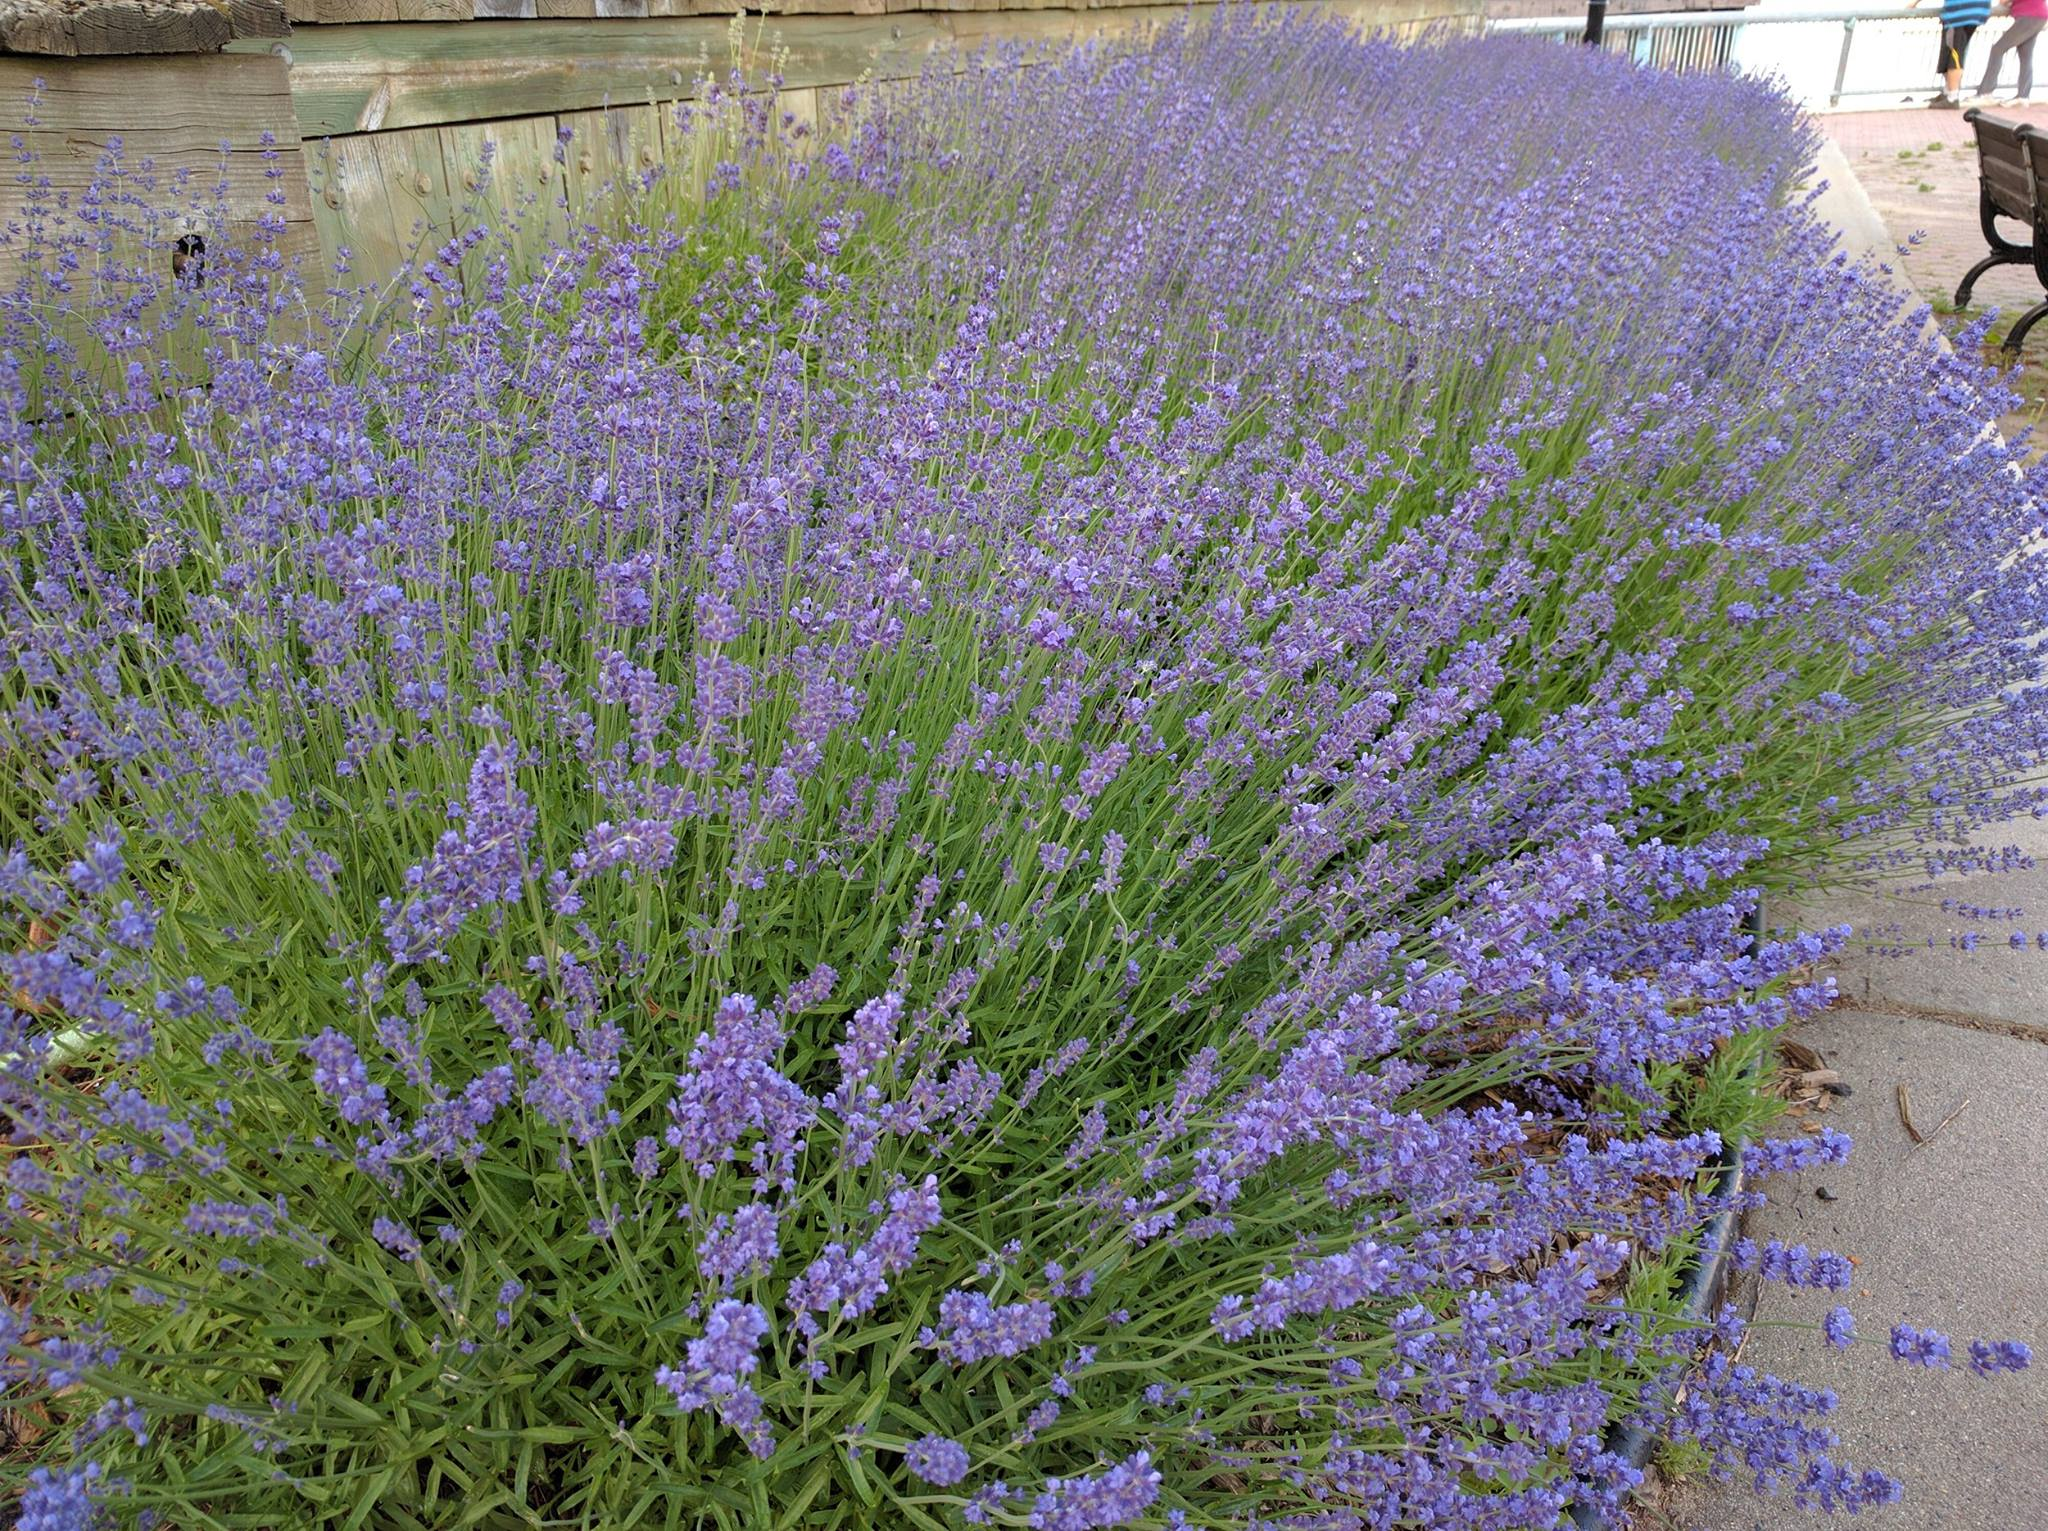 Lavender at the Ferry Slip